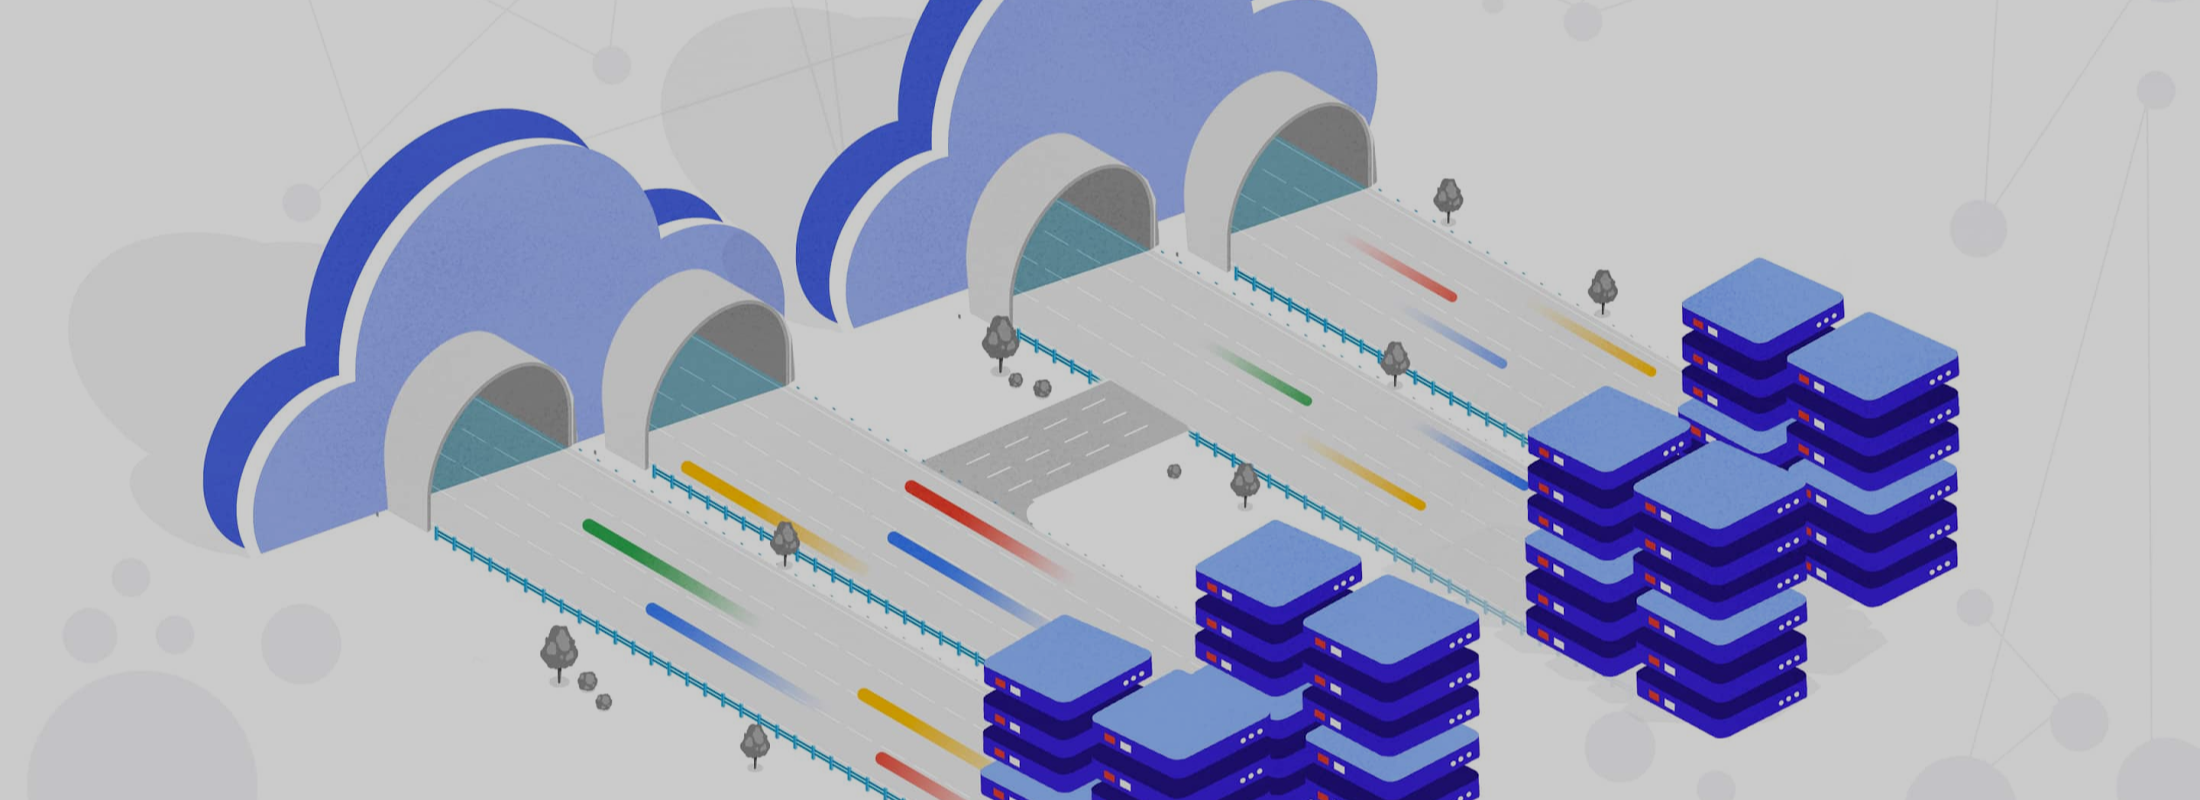 Cloud migration: What you need to know (and where to find it)